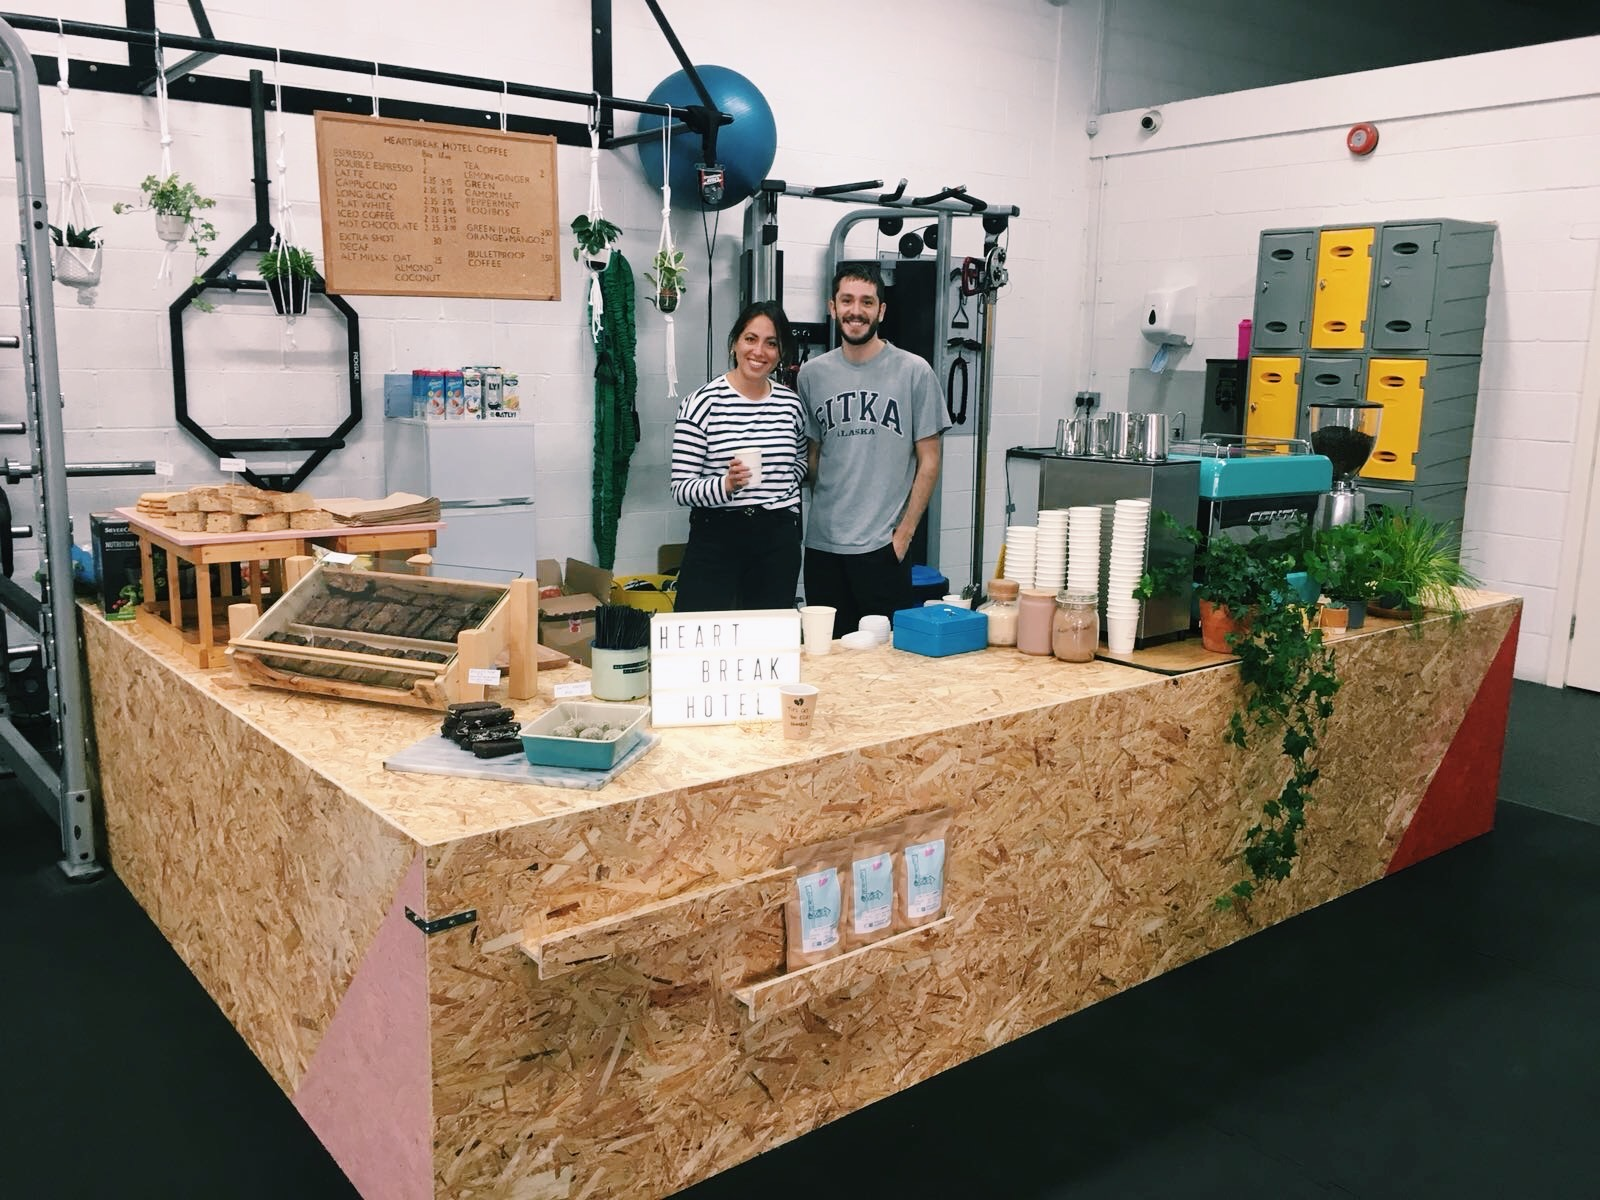 Hire us at your next Event… - You can have great coffee that everyone will love at your next event. From sporting competitions to summer fayres, include great coffee and bakes at your next event.